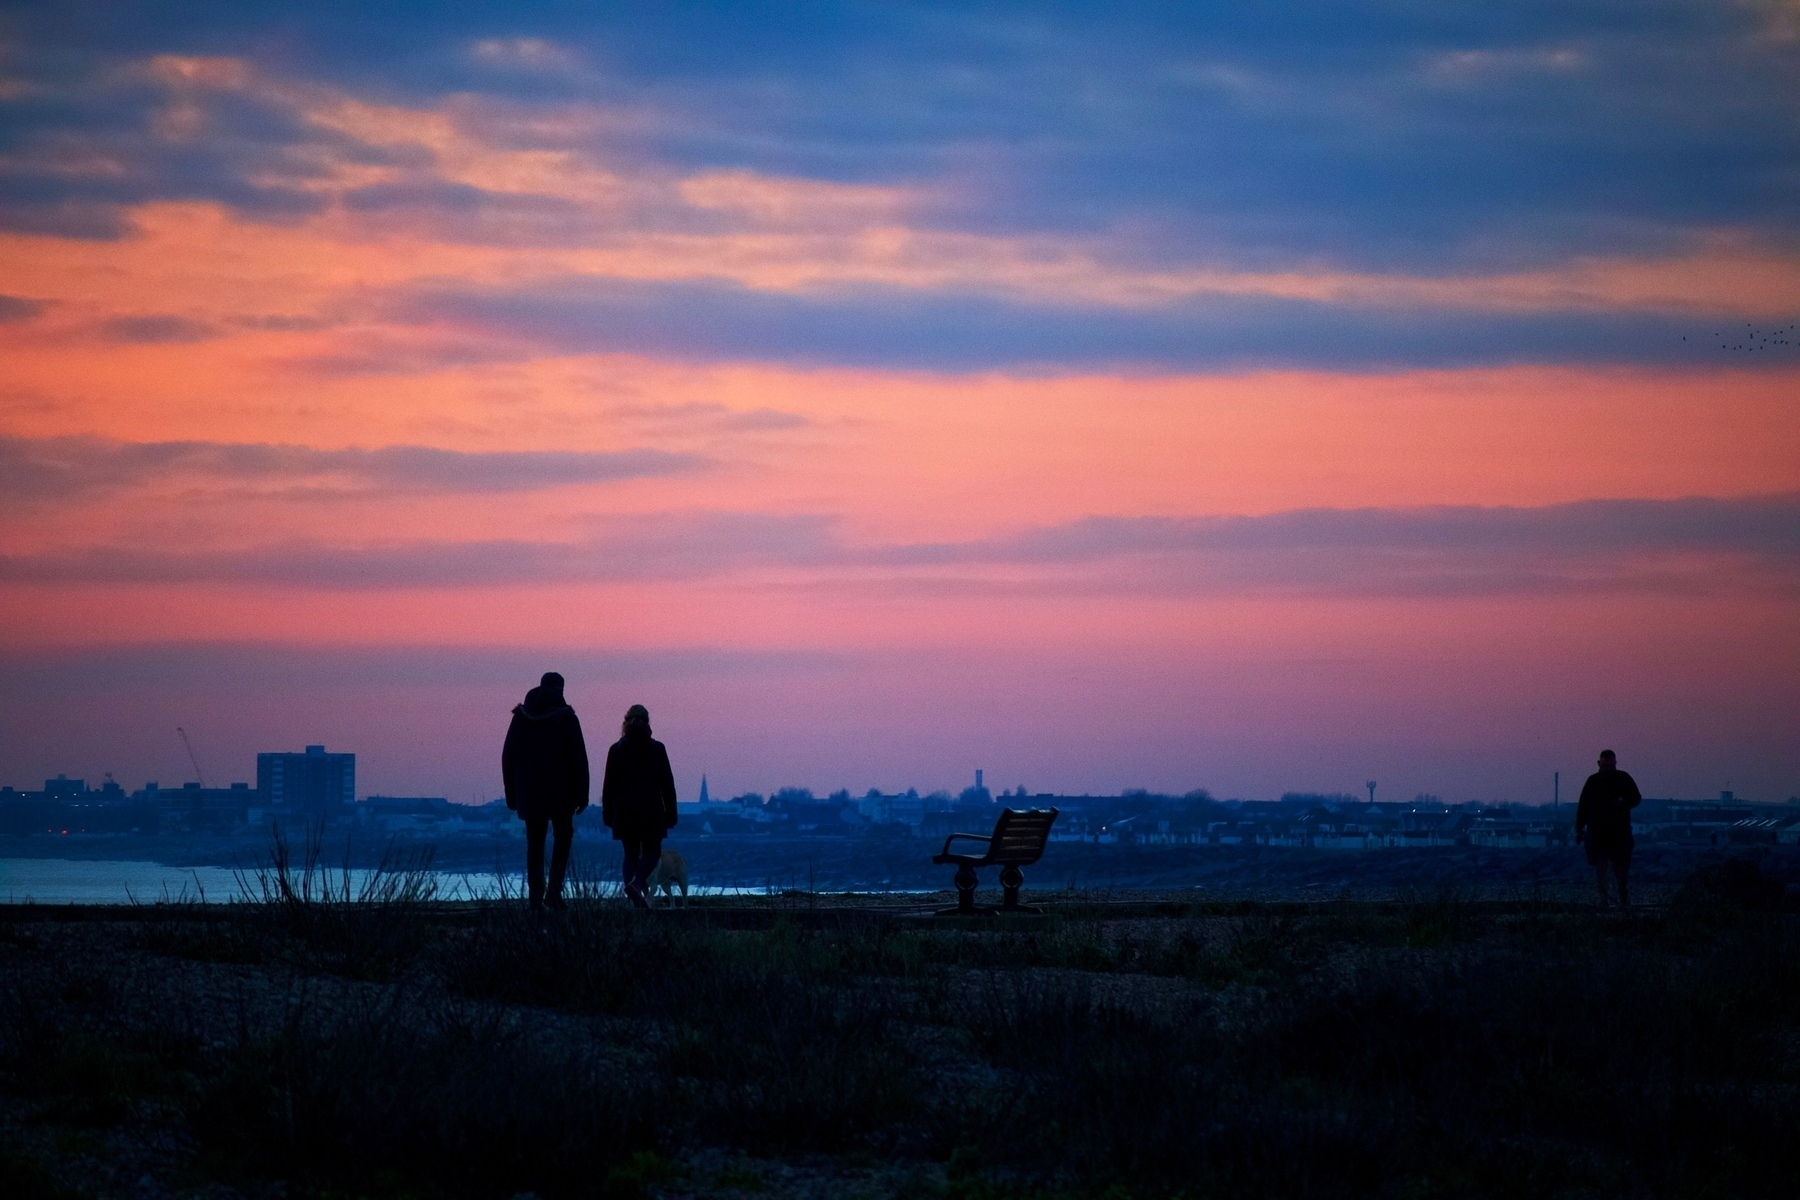 Dusk over Shoreham Beach, looking towards Worthing, with walkers in the foreground